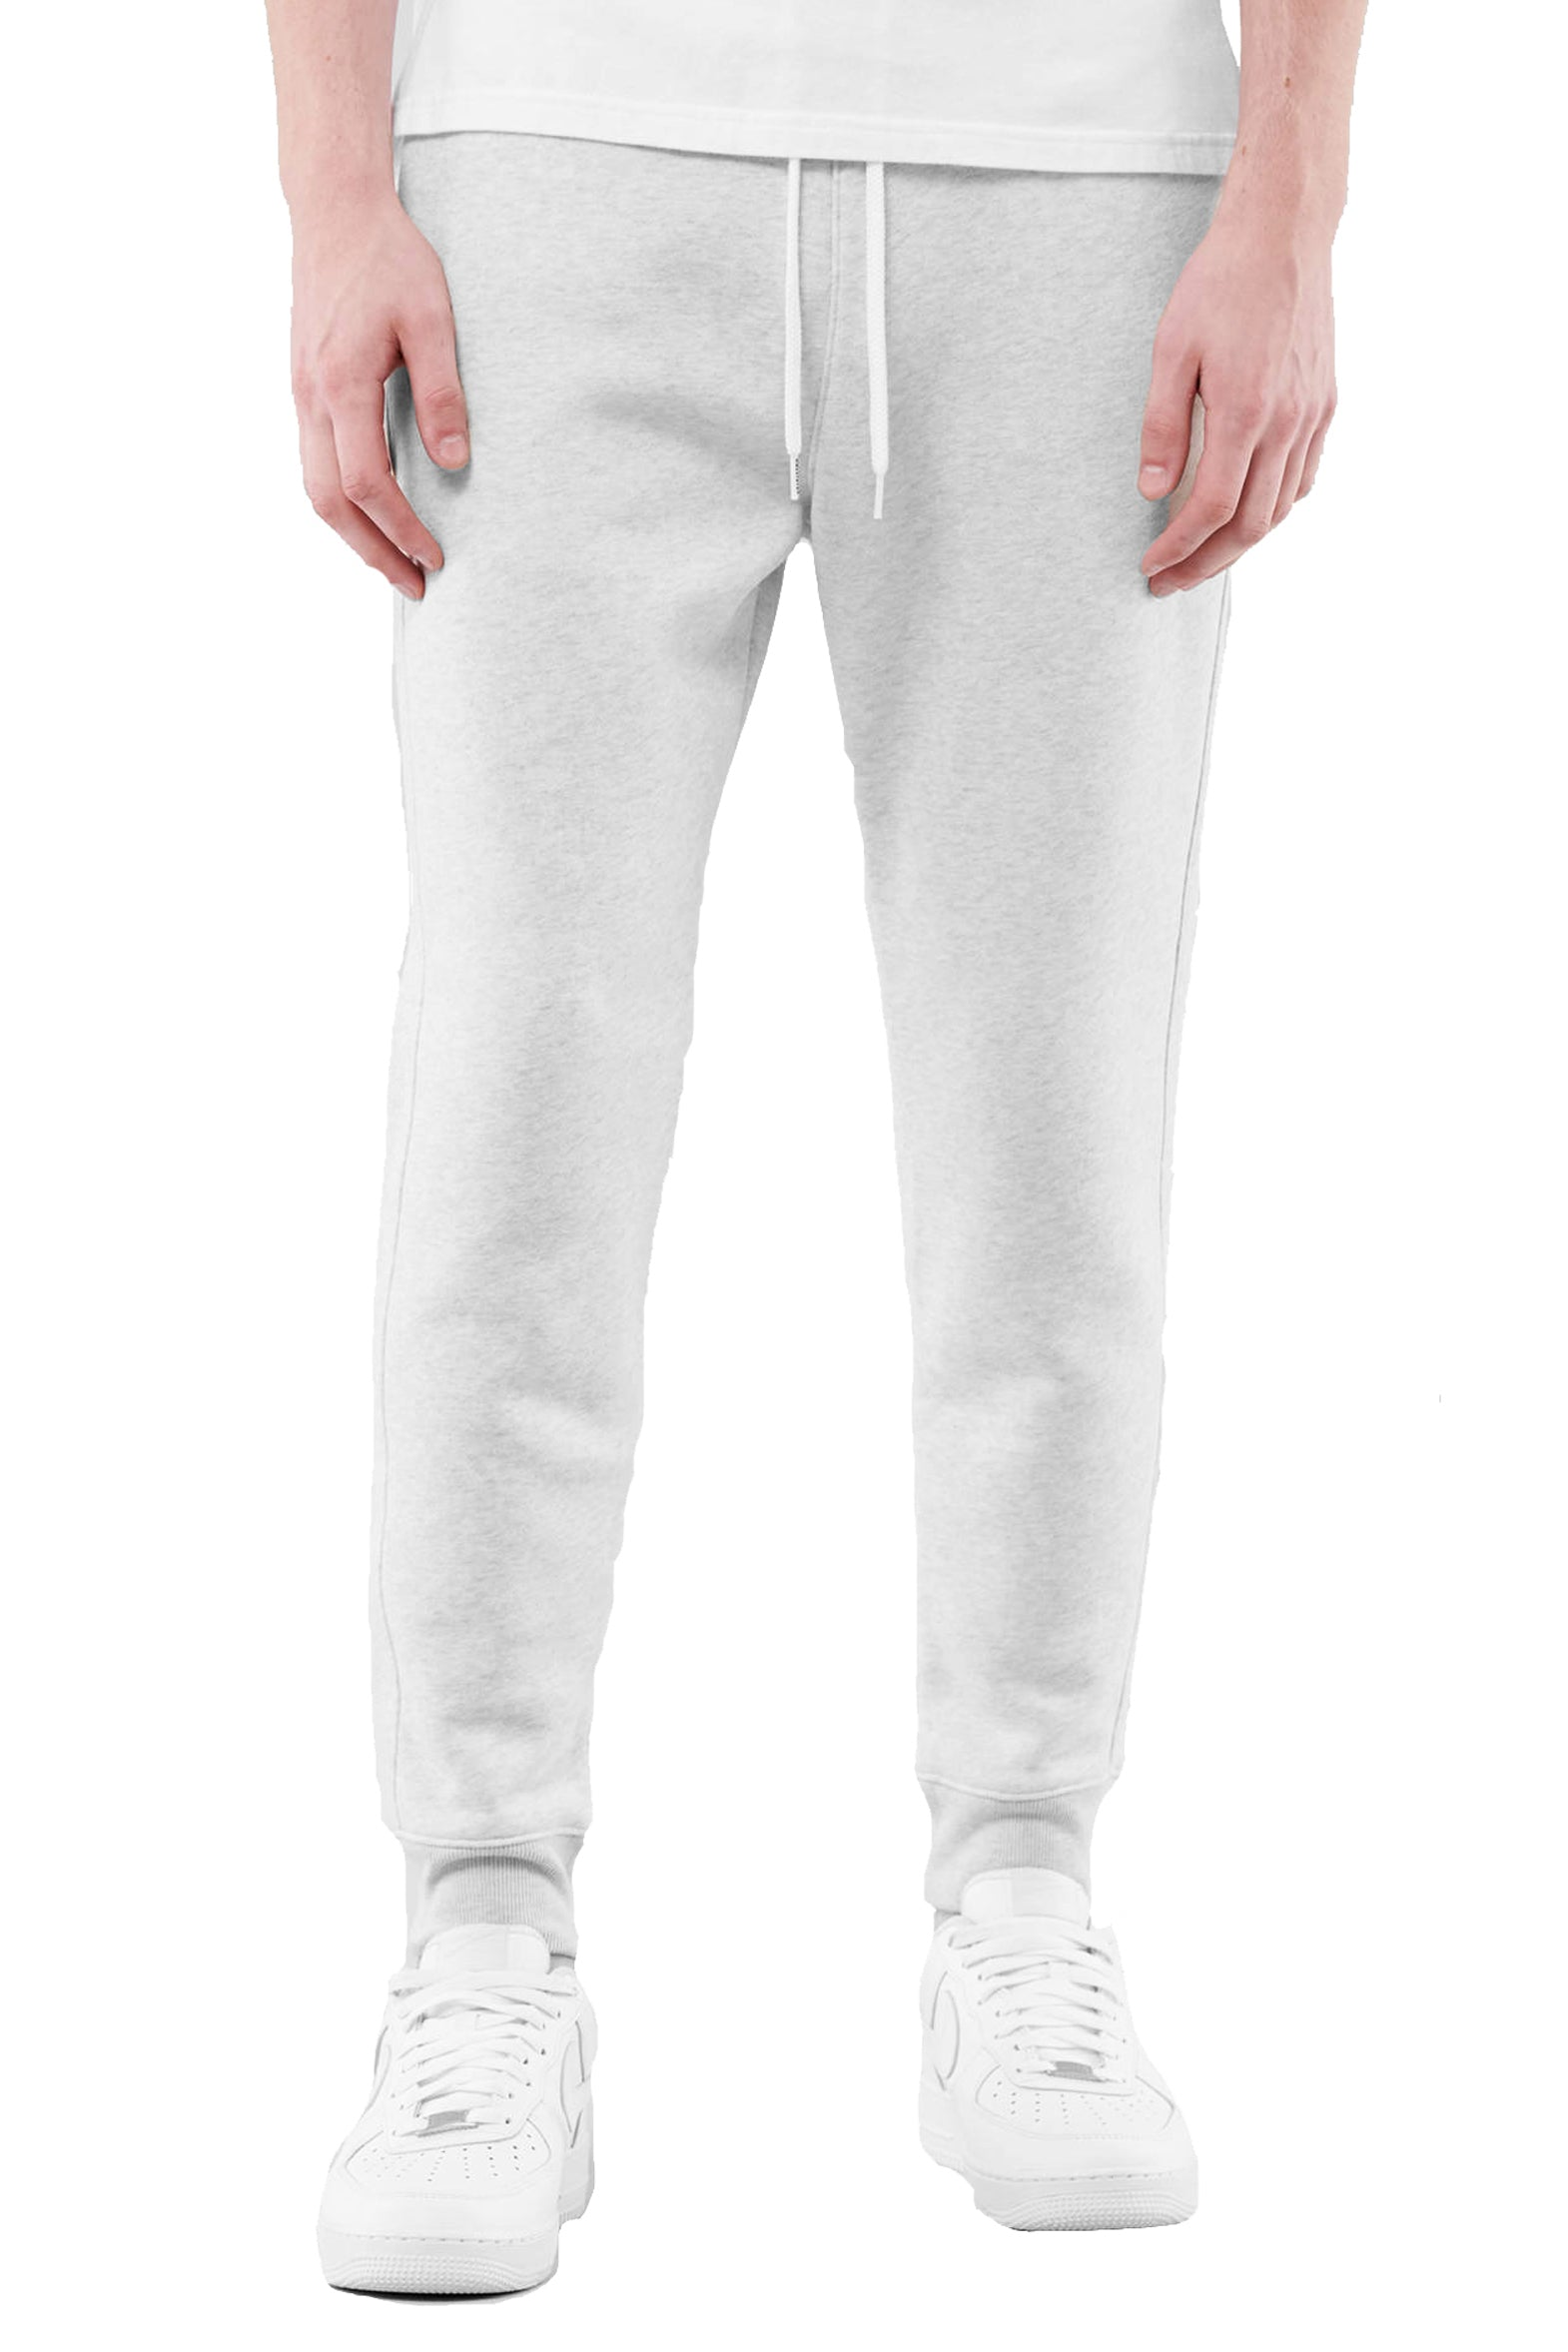 ET U Comfies | Slim Fit Joggers for Men | Gray